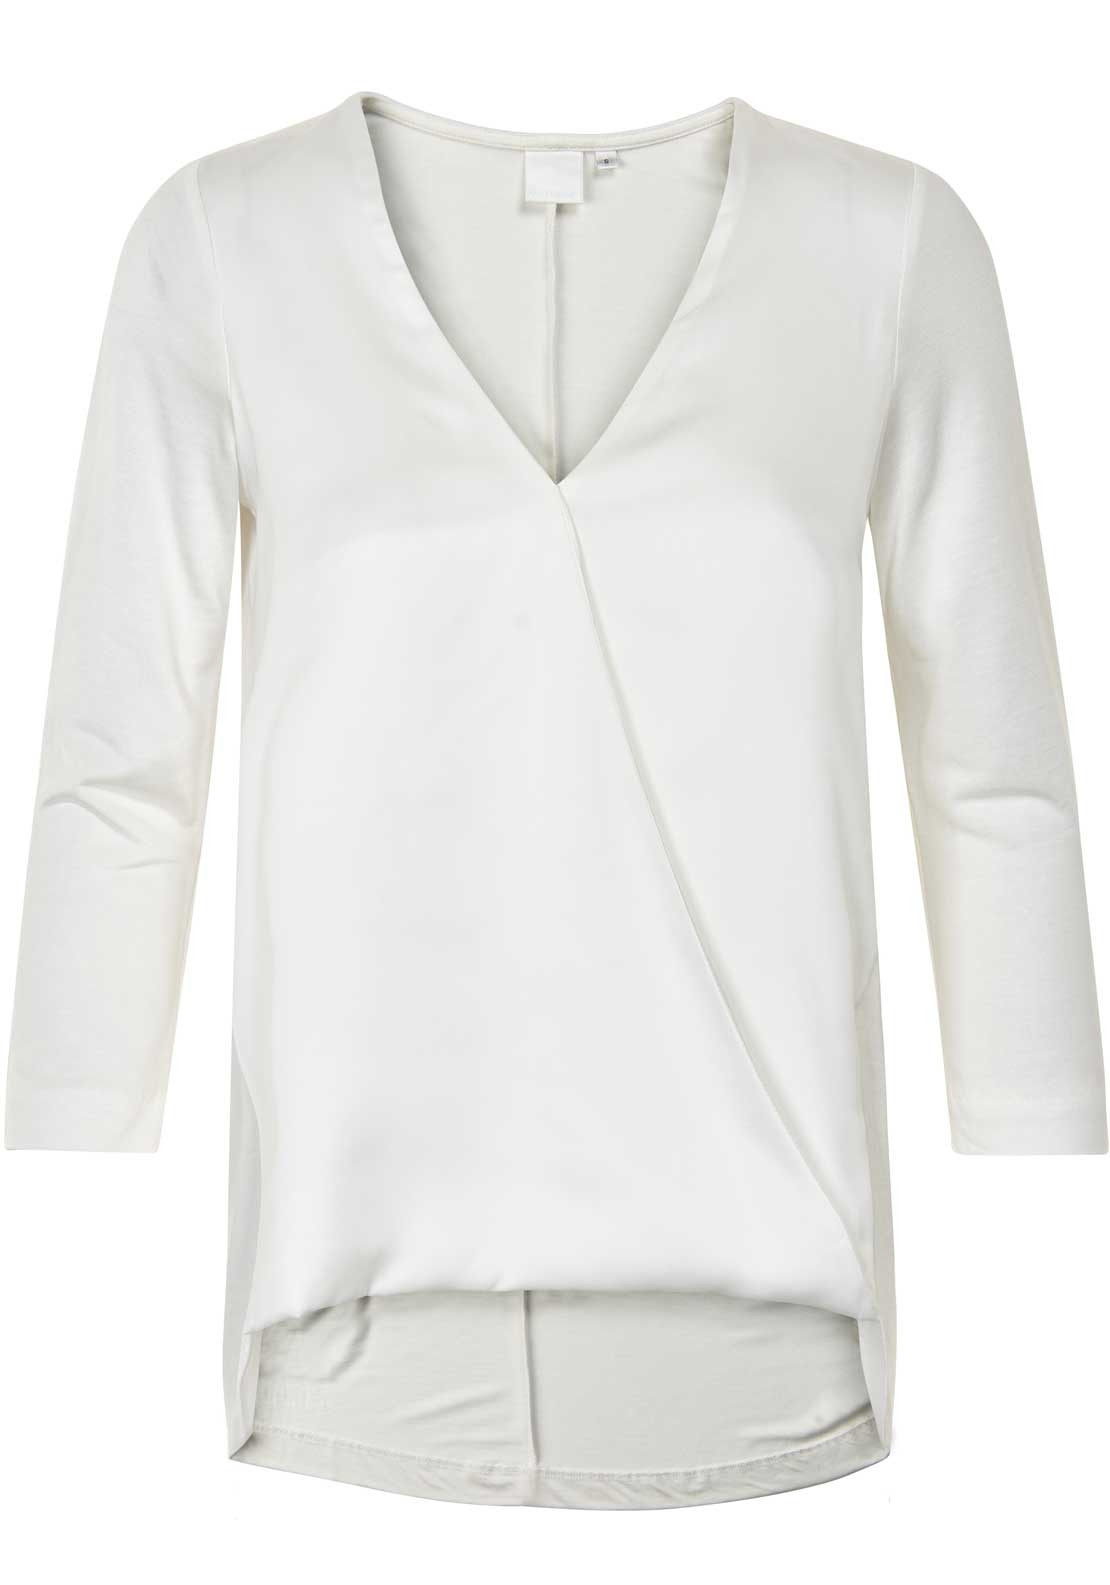 Inwear Nana Wrap Front Cropped Sleeve Blouse, Off White